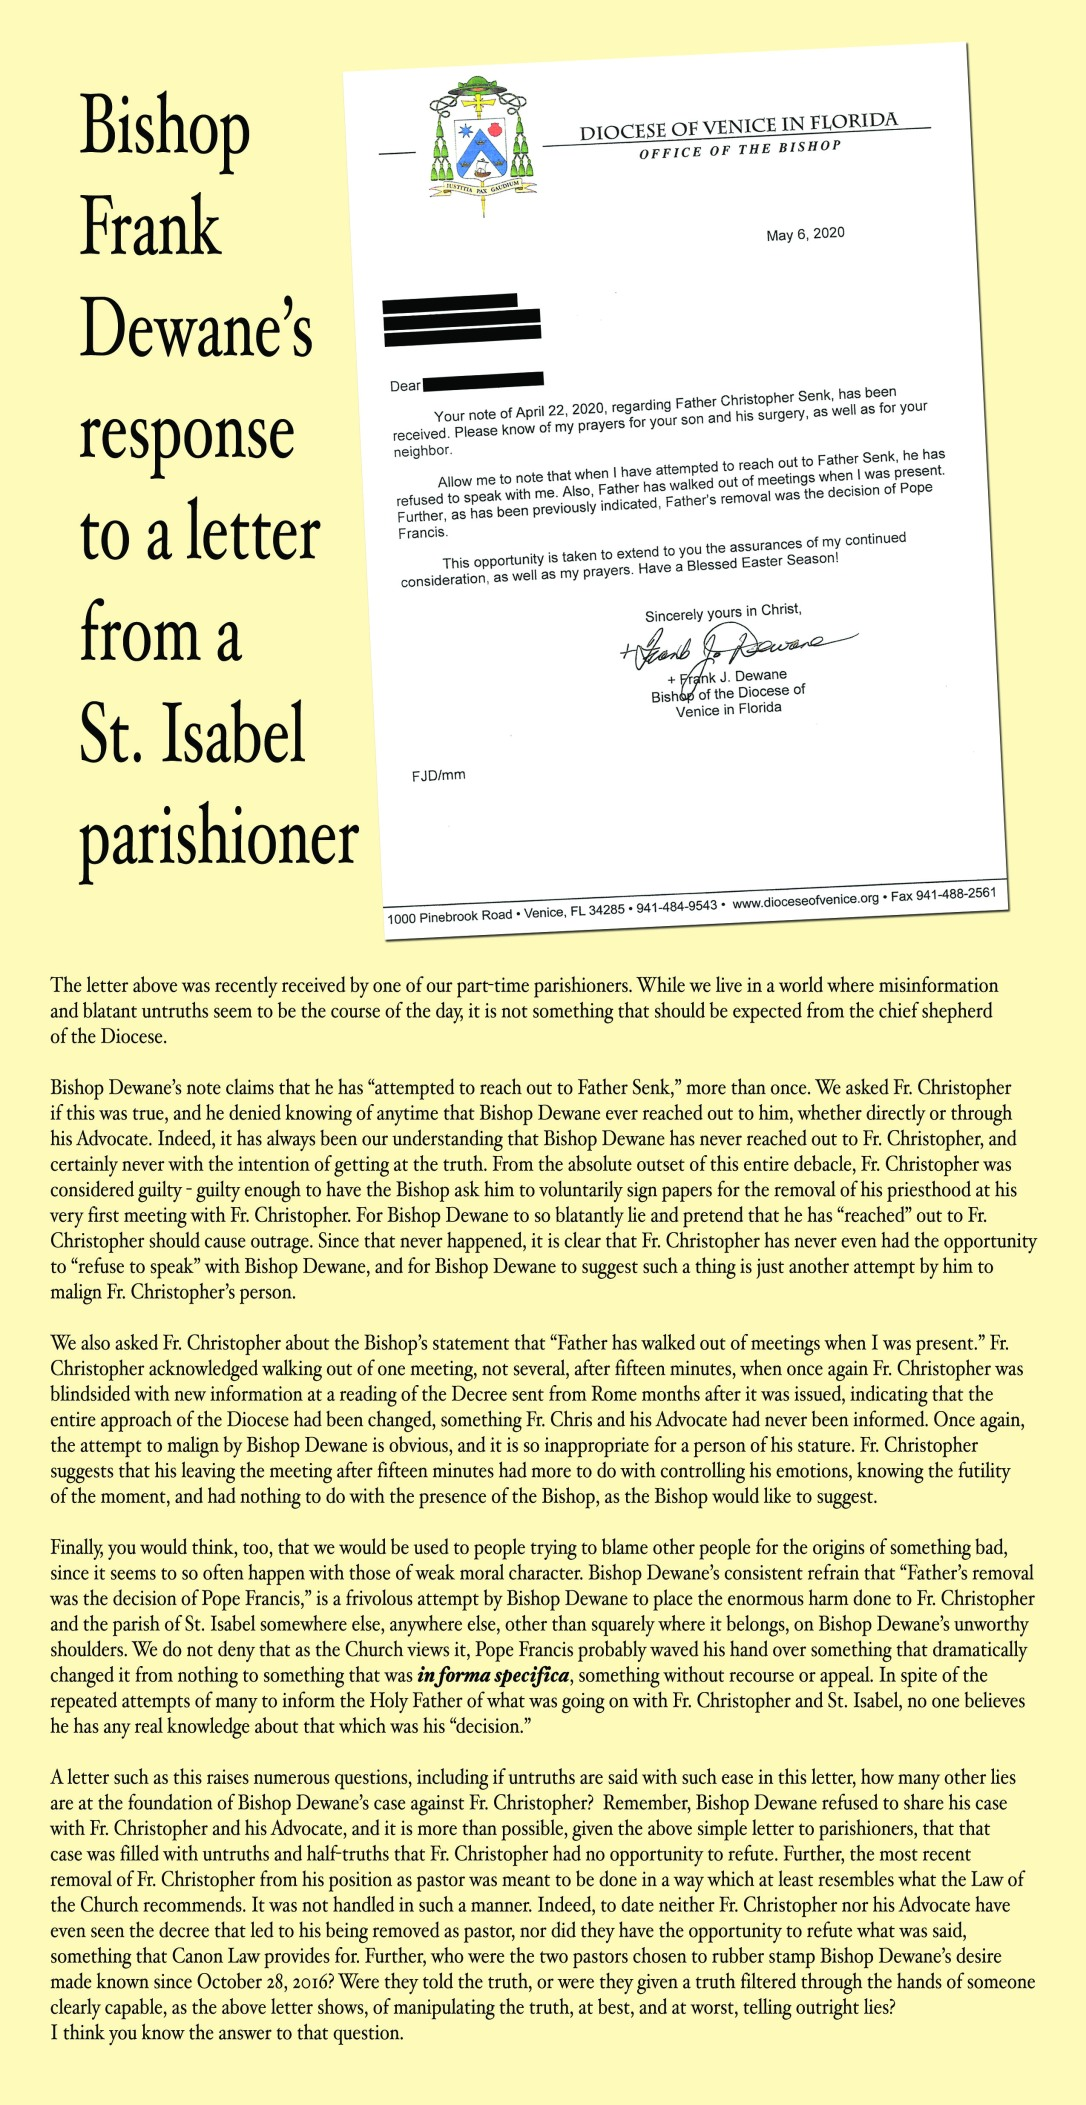 May 6 letter, response